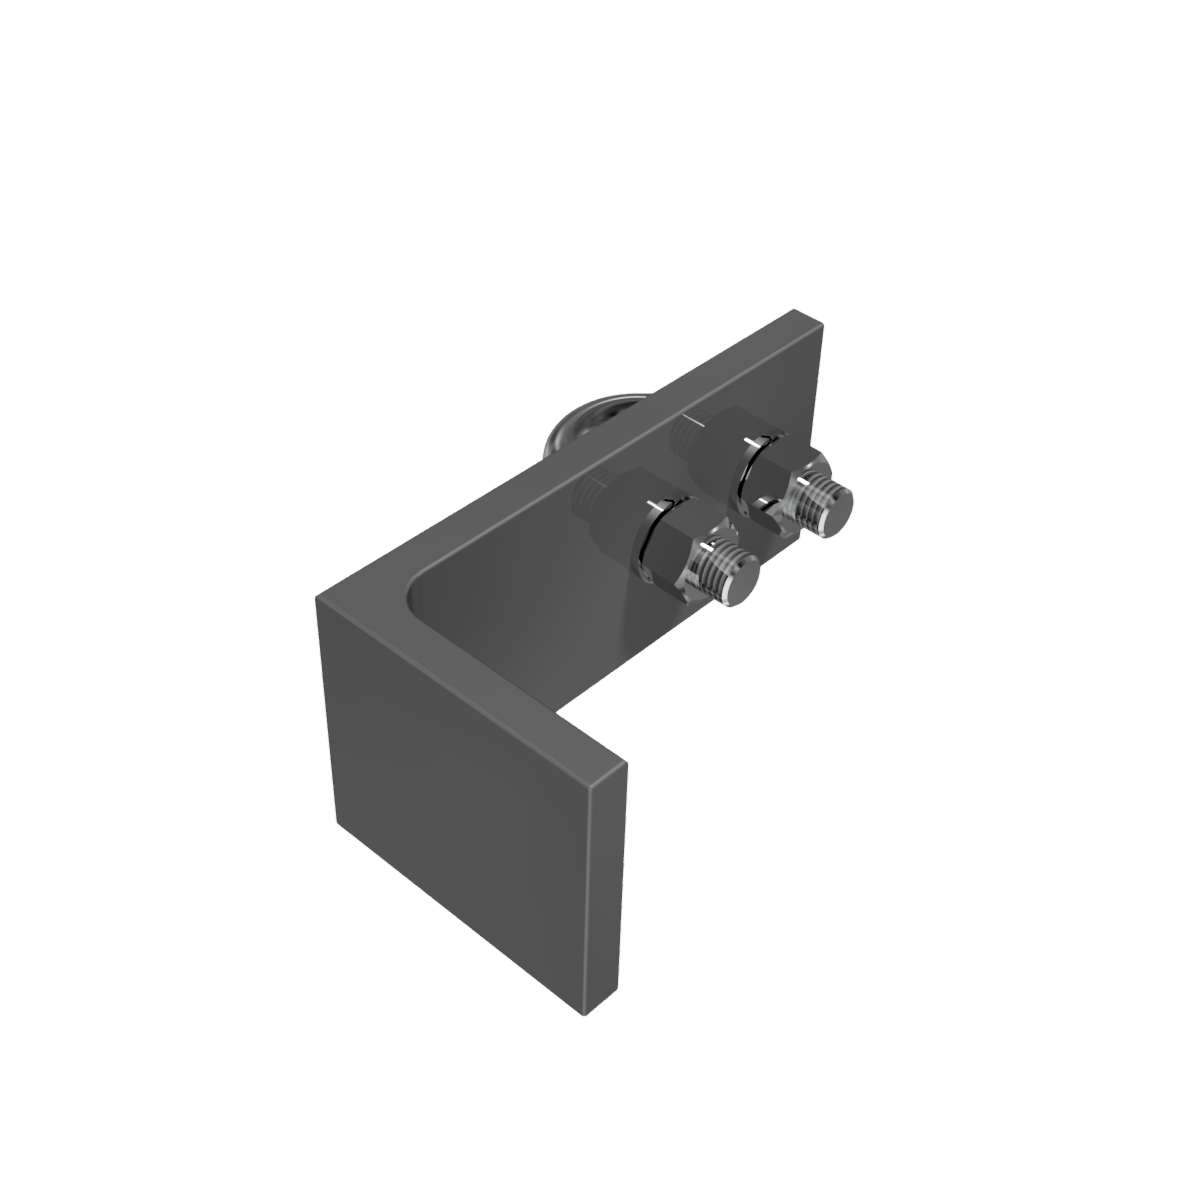 http://Product%20image%20of%20Sacrificial%20anodes%20Brackets%20and%20clamps%20/%20Produktbilde%20av%20Offeranoder%20L-profil%20